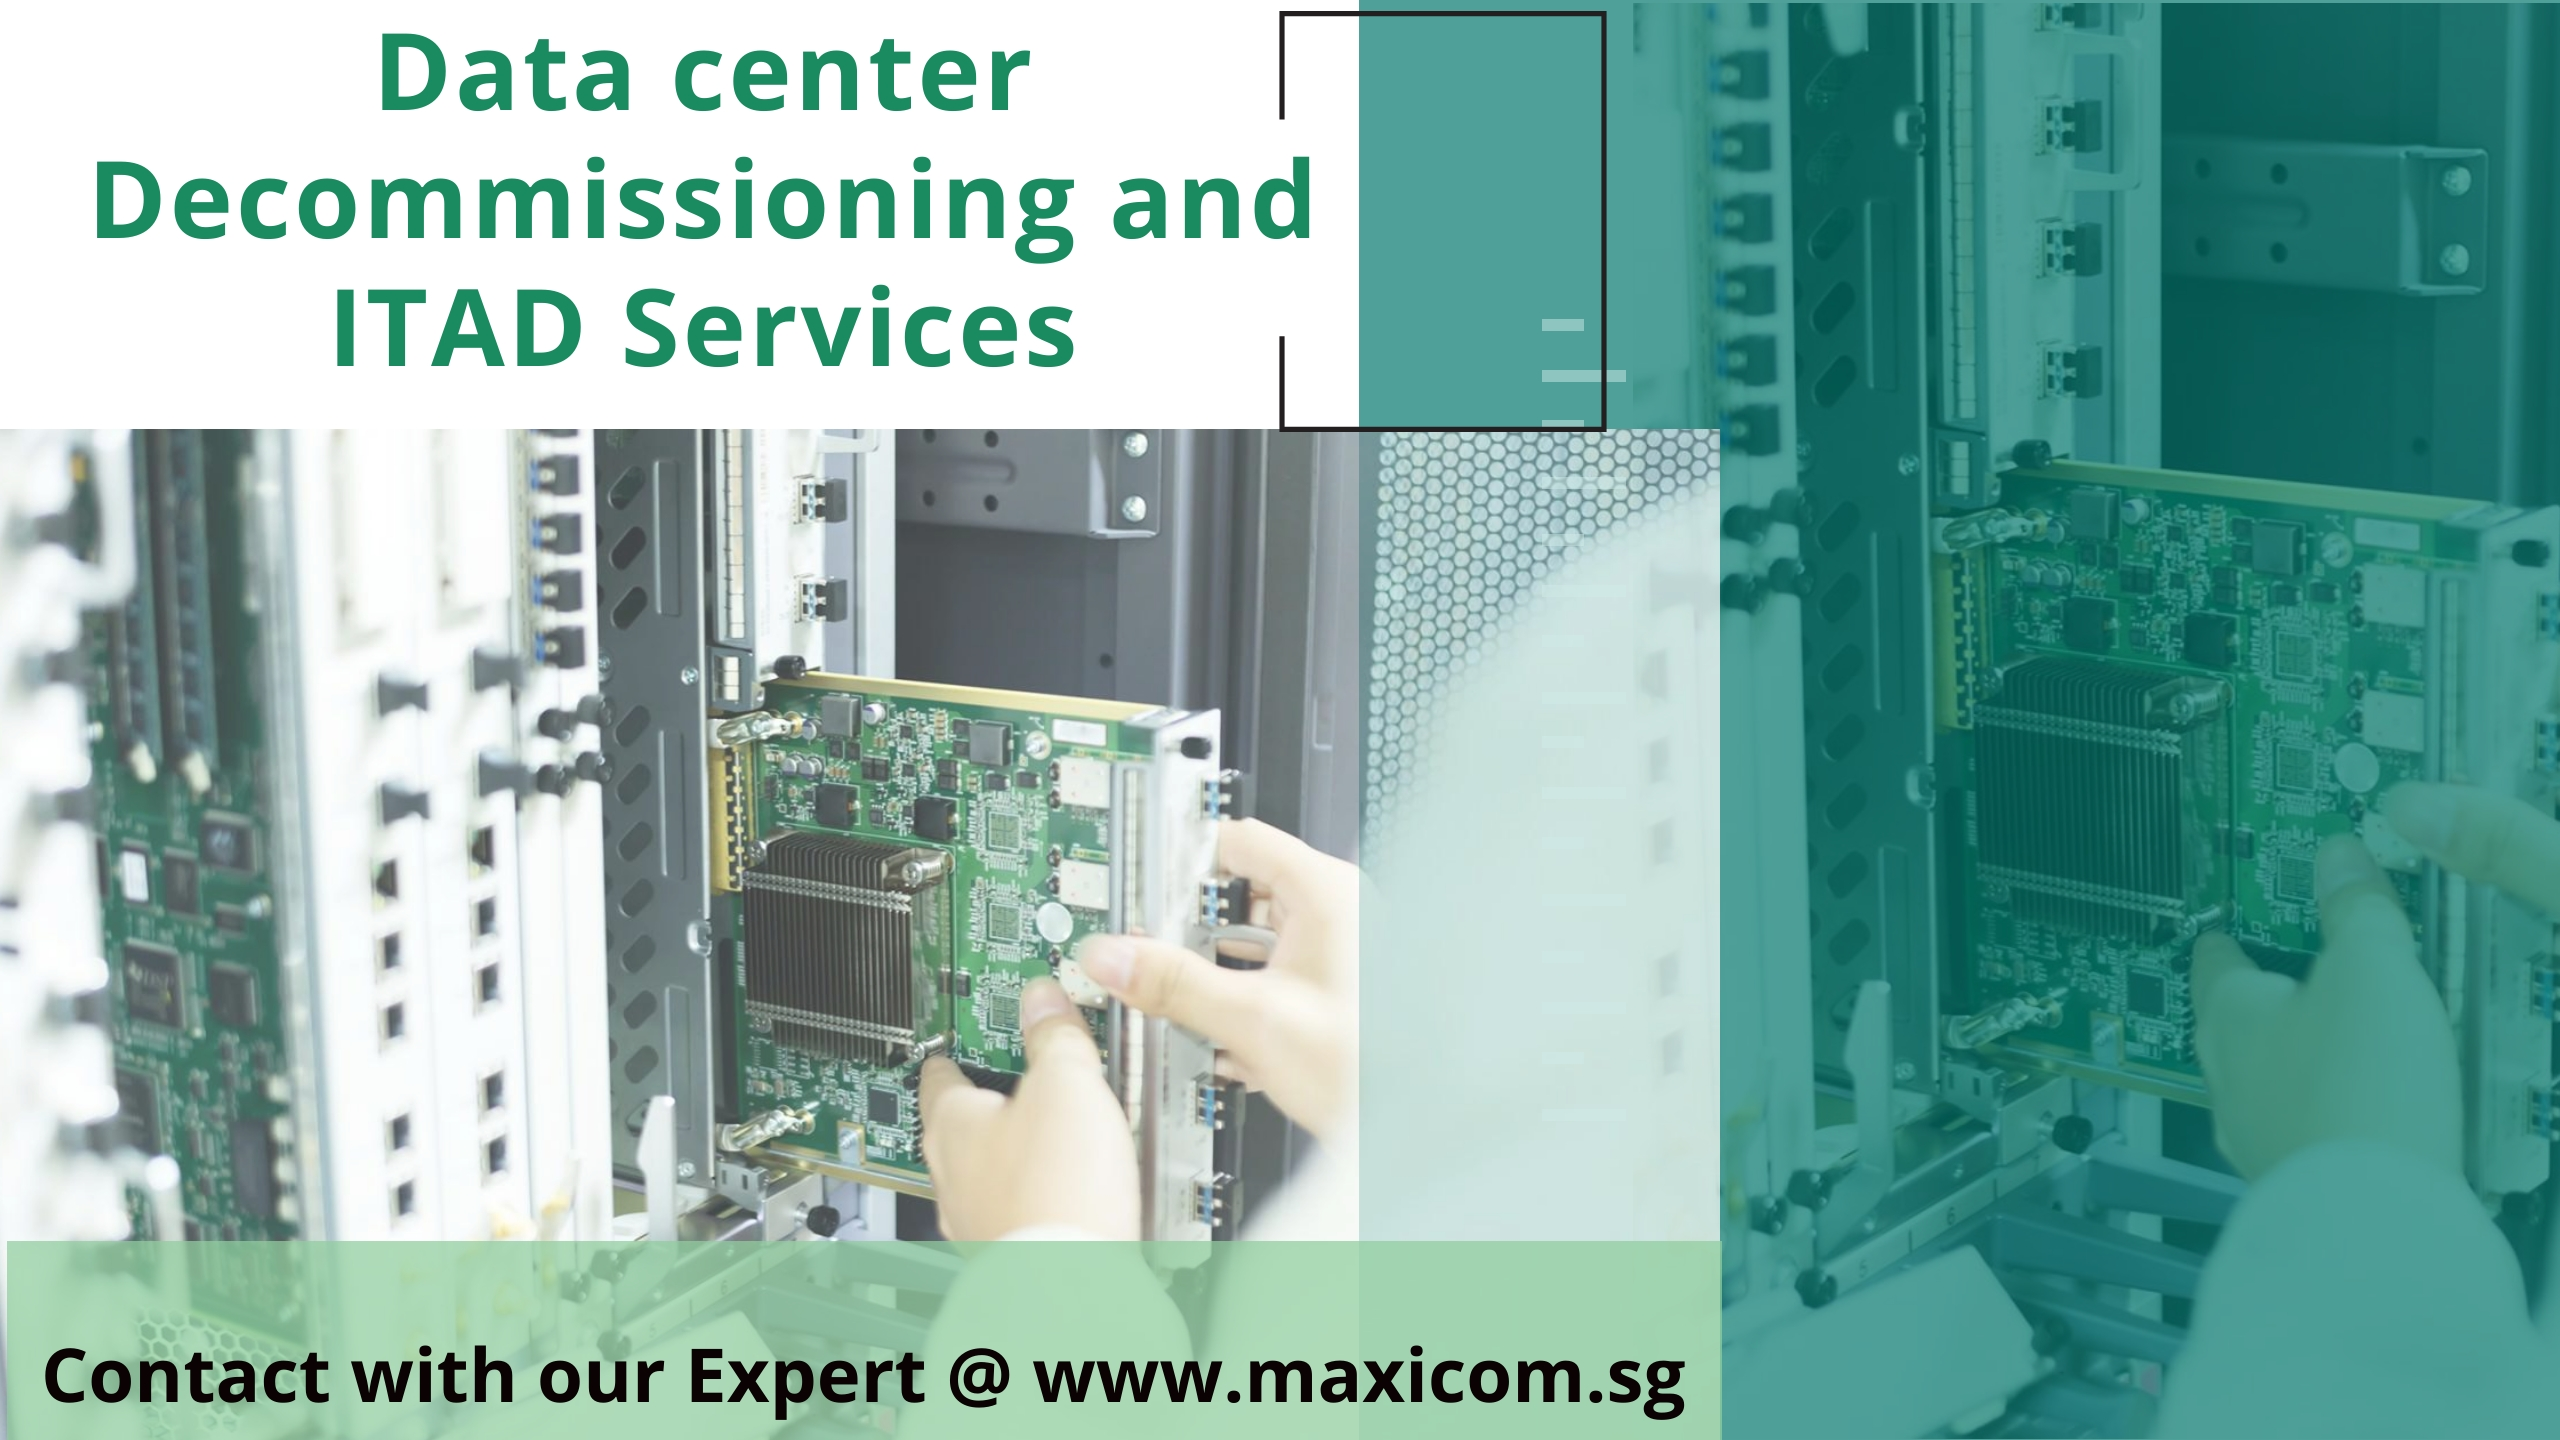 Maxicom Singapore Provide Data center decommissioning and ITAD Services in Singapore